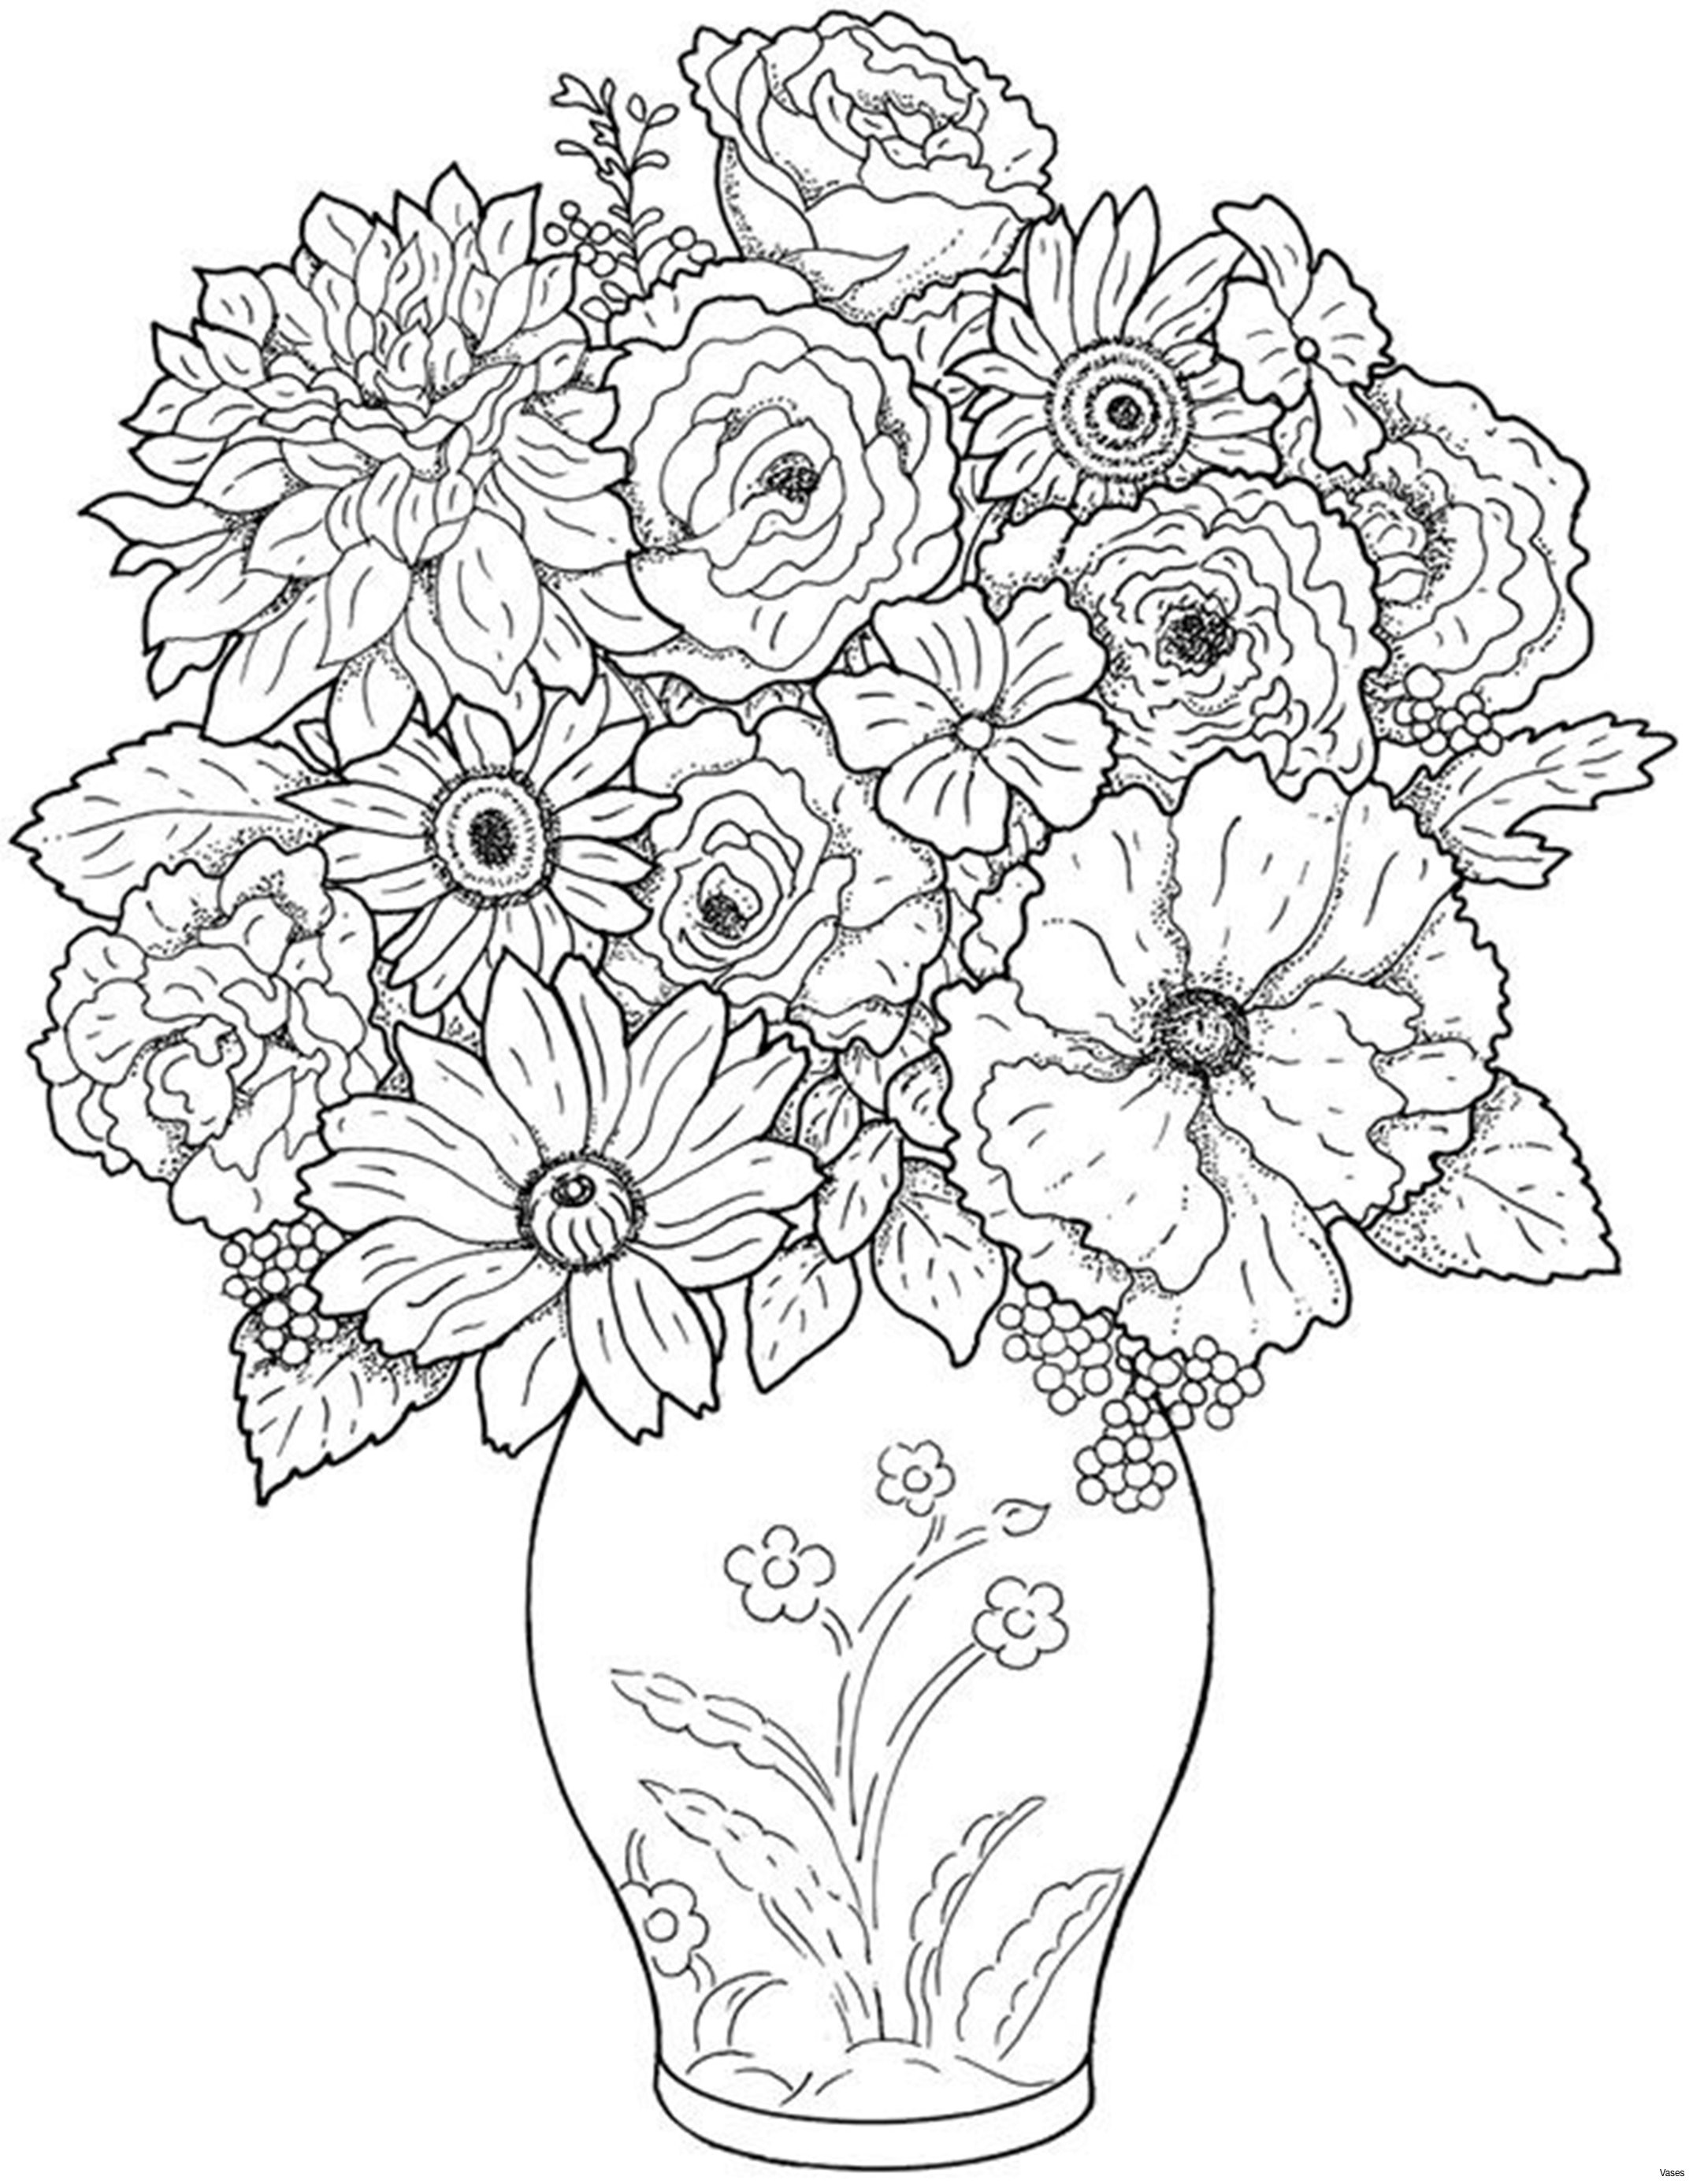 colorful vases images of cool vases flower vase coloring page pages flowers in a top i 0d ruva throughout cool vases flower vase coloring page pages flowers in a top i 0d